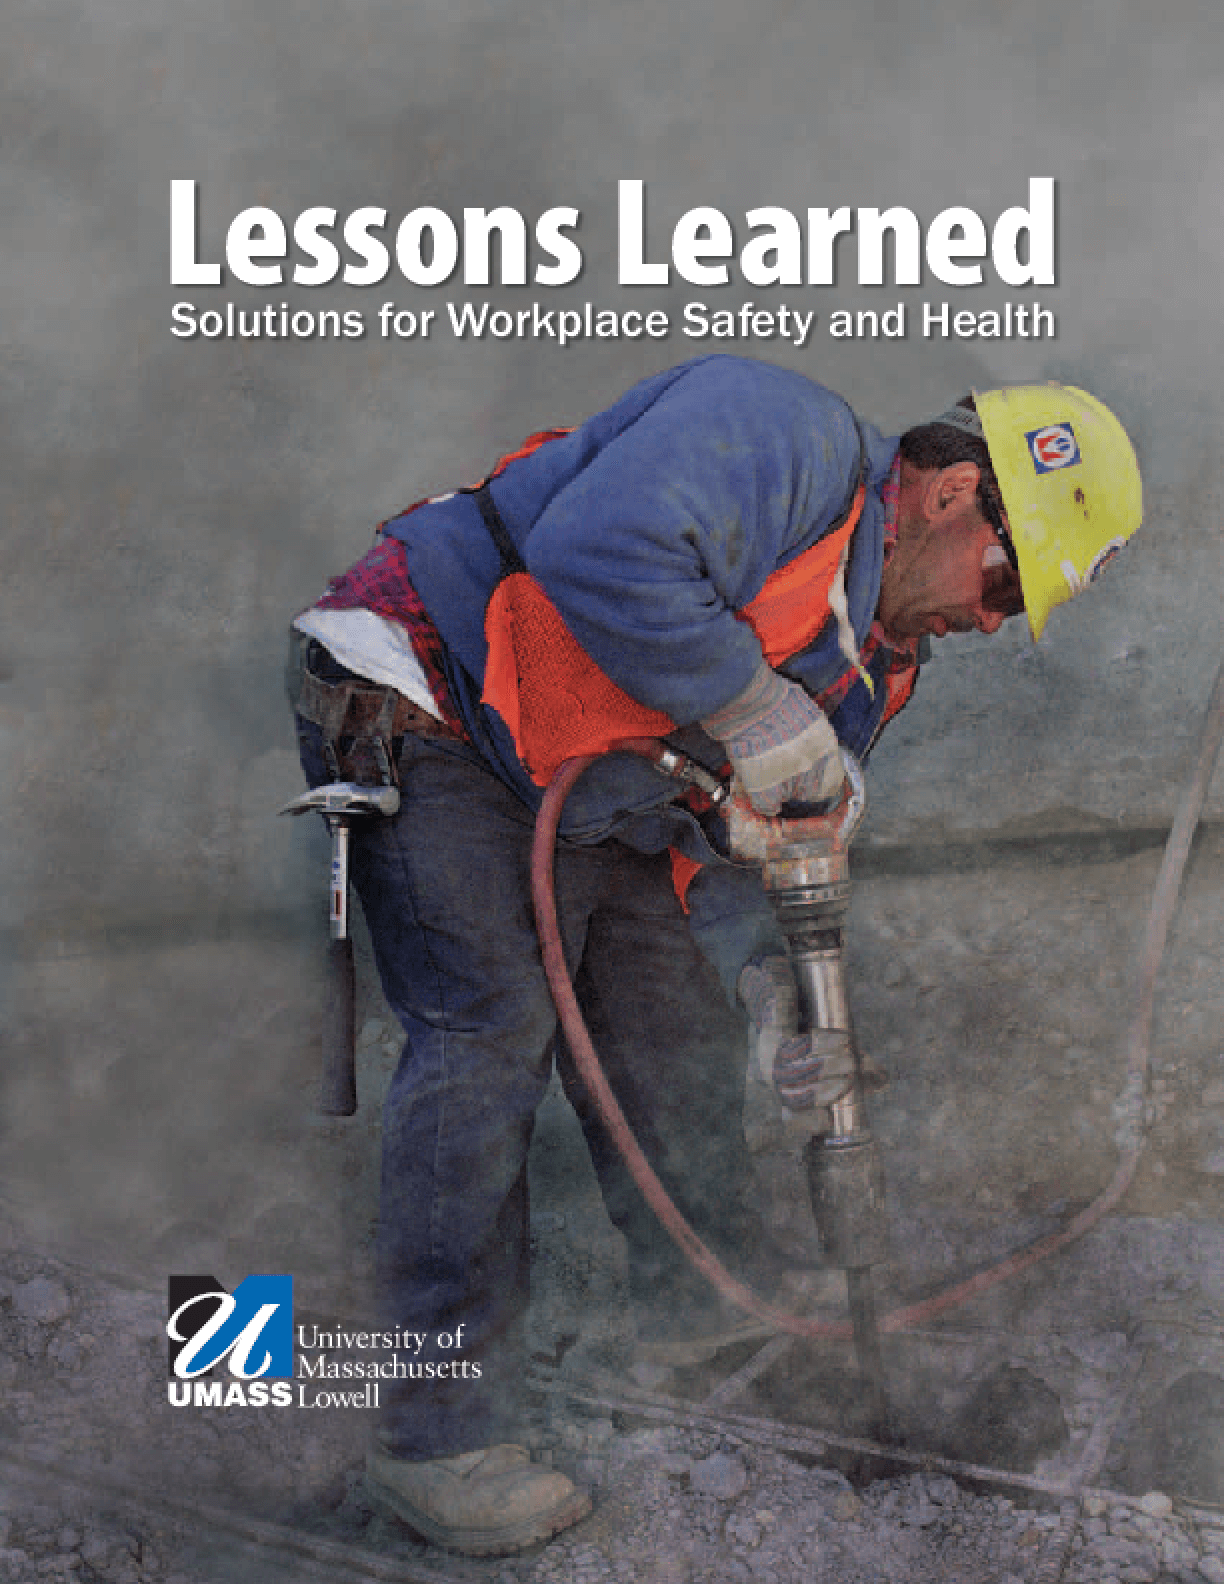 Lessons Learned: Solutions for Workplace Safety and Health